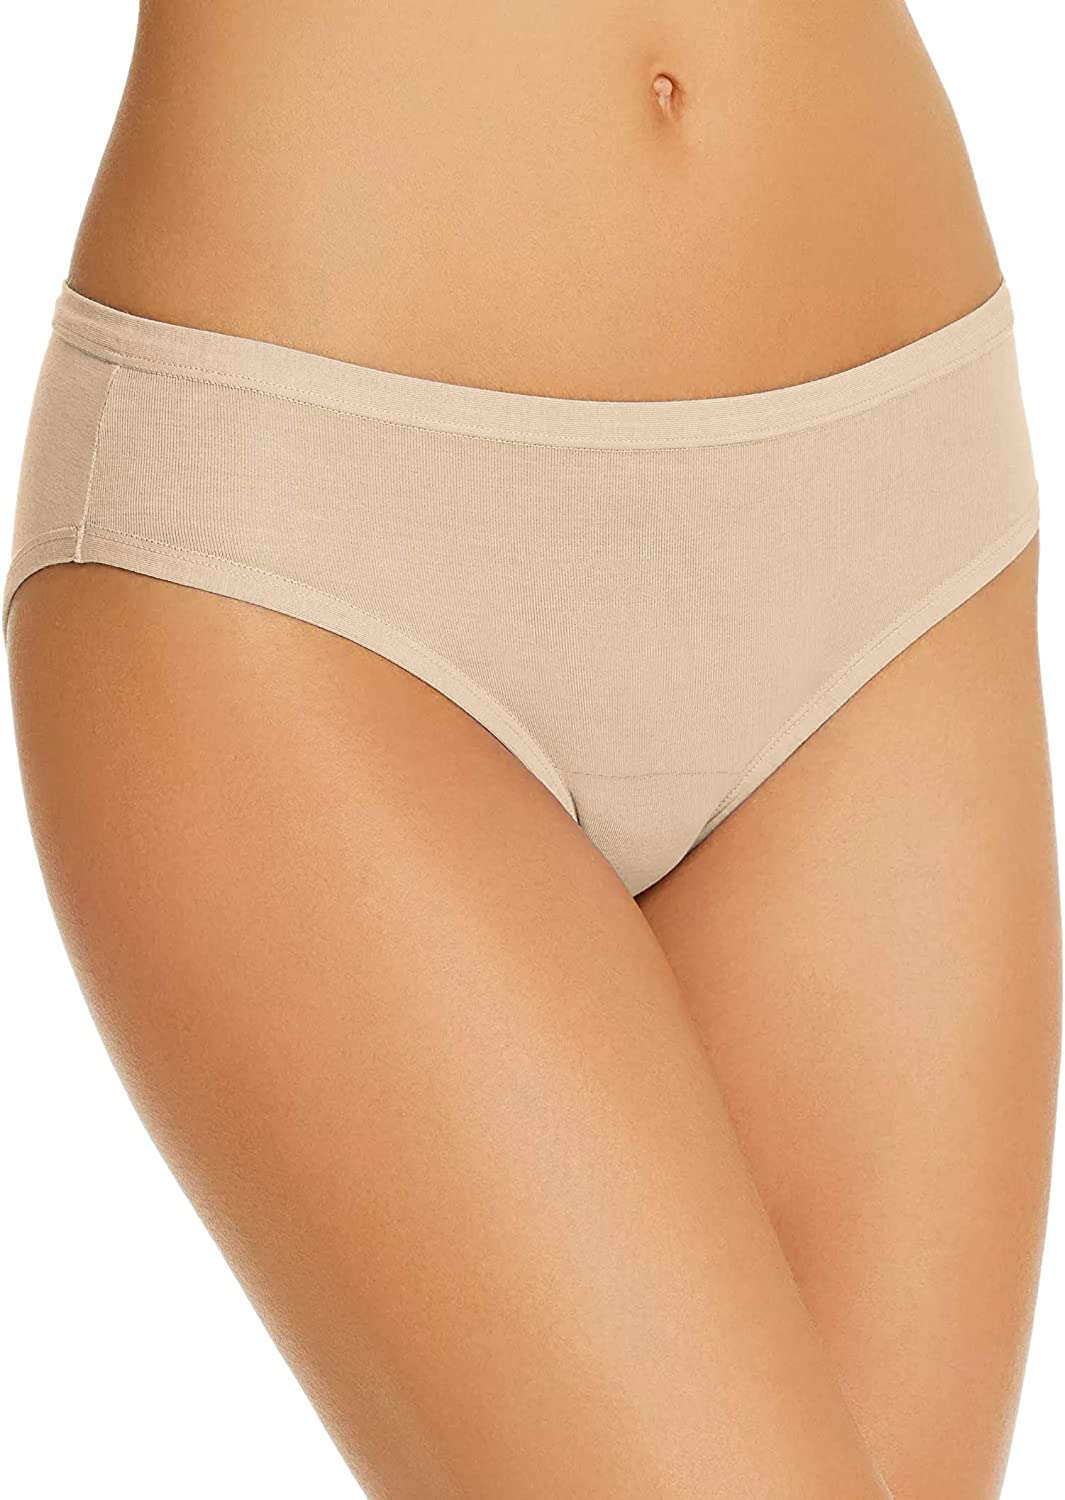 TAIPOVE Women/'s Comfort Underwear 6-Pack Cotton Stretch Hipster Panties Mid Rise Soft Bikini Briefs Assorted